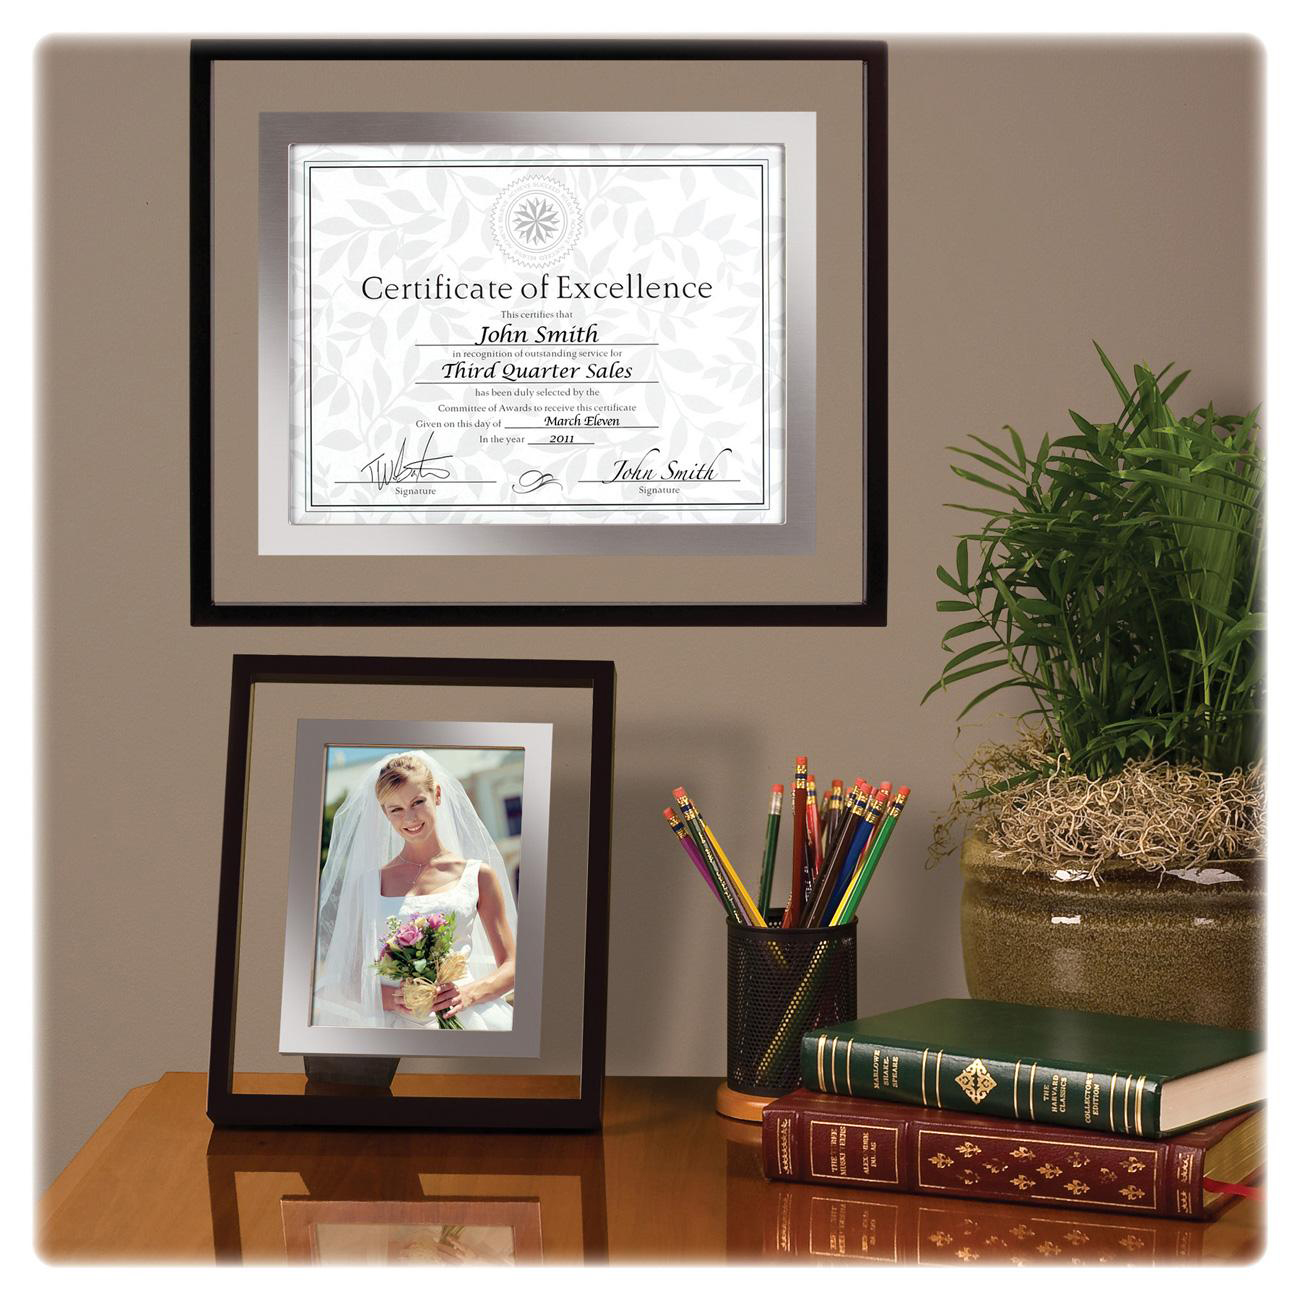 burnes upper west side document float frame 15 x 13 frame 11 x 850 insert desktop vertical horizontal glass wood black n1858n4t